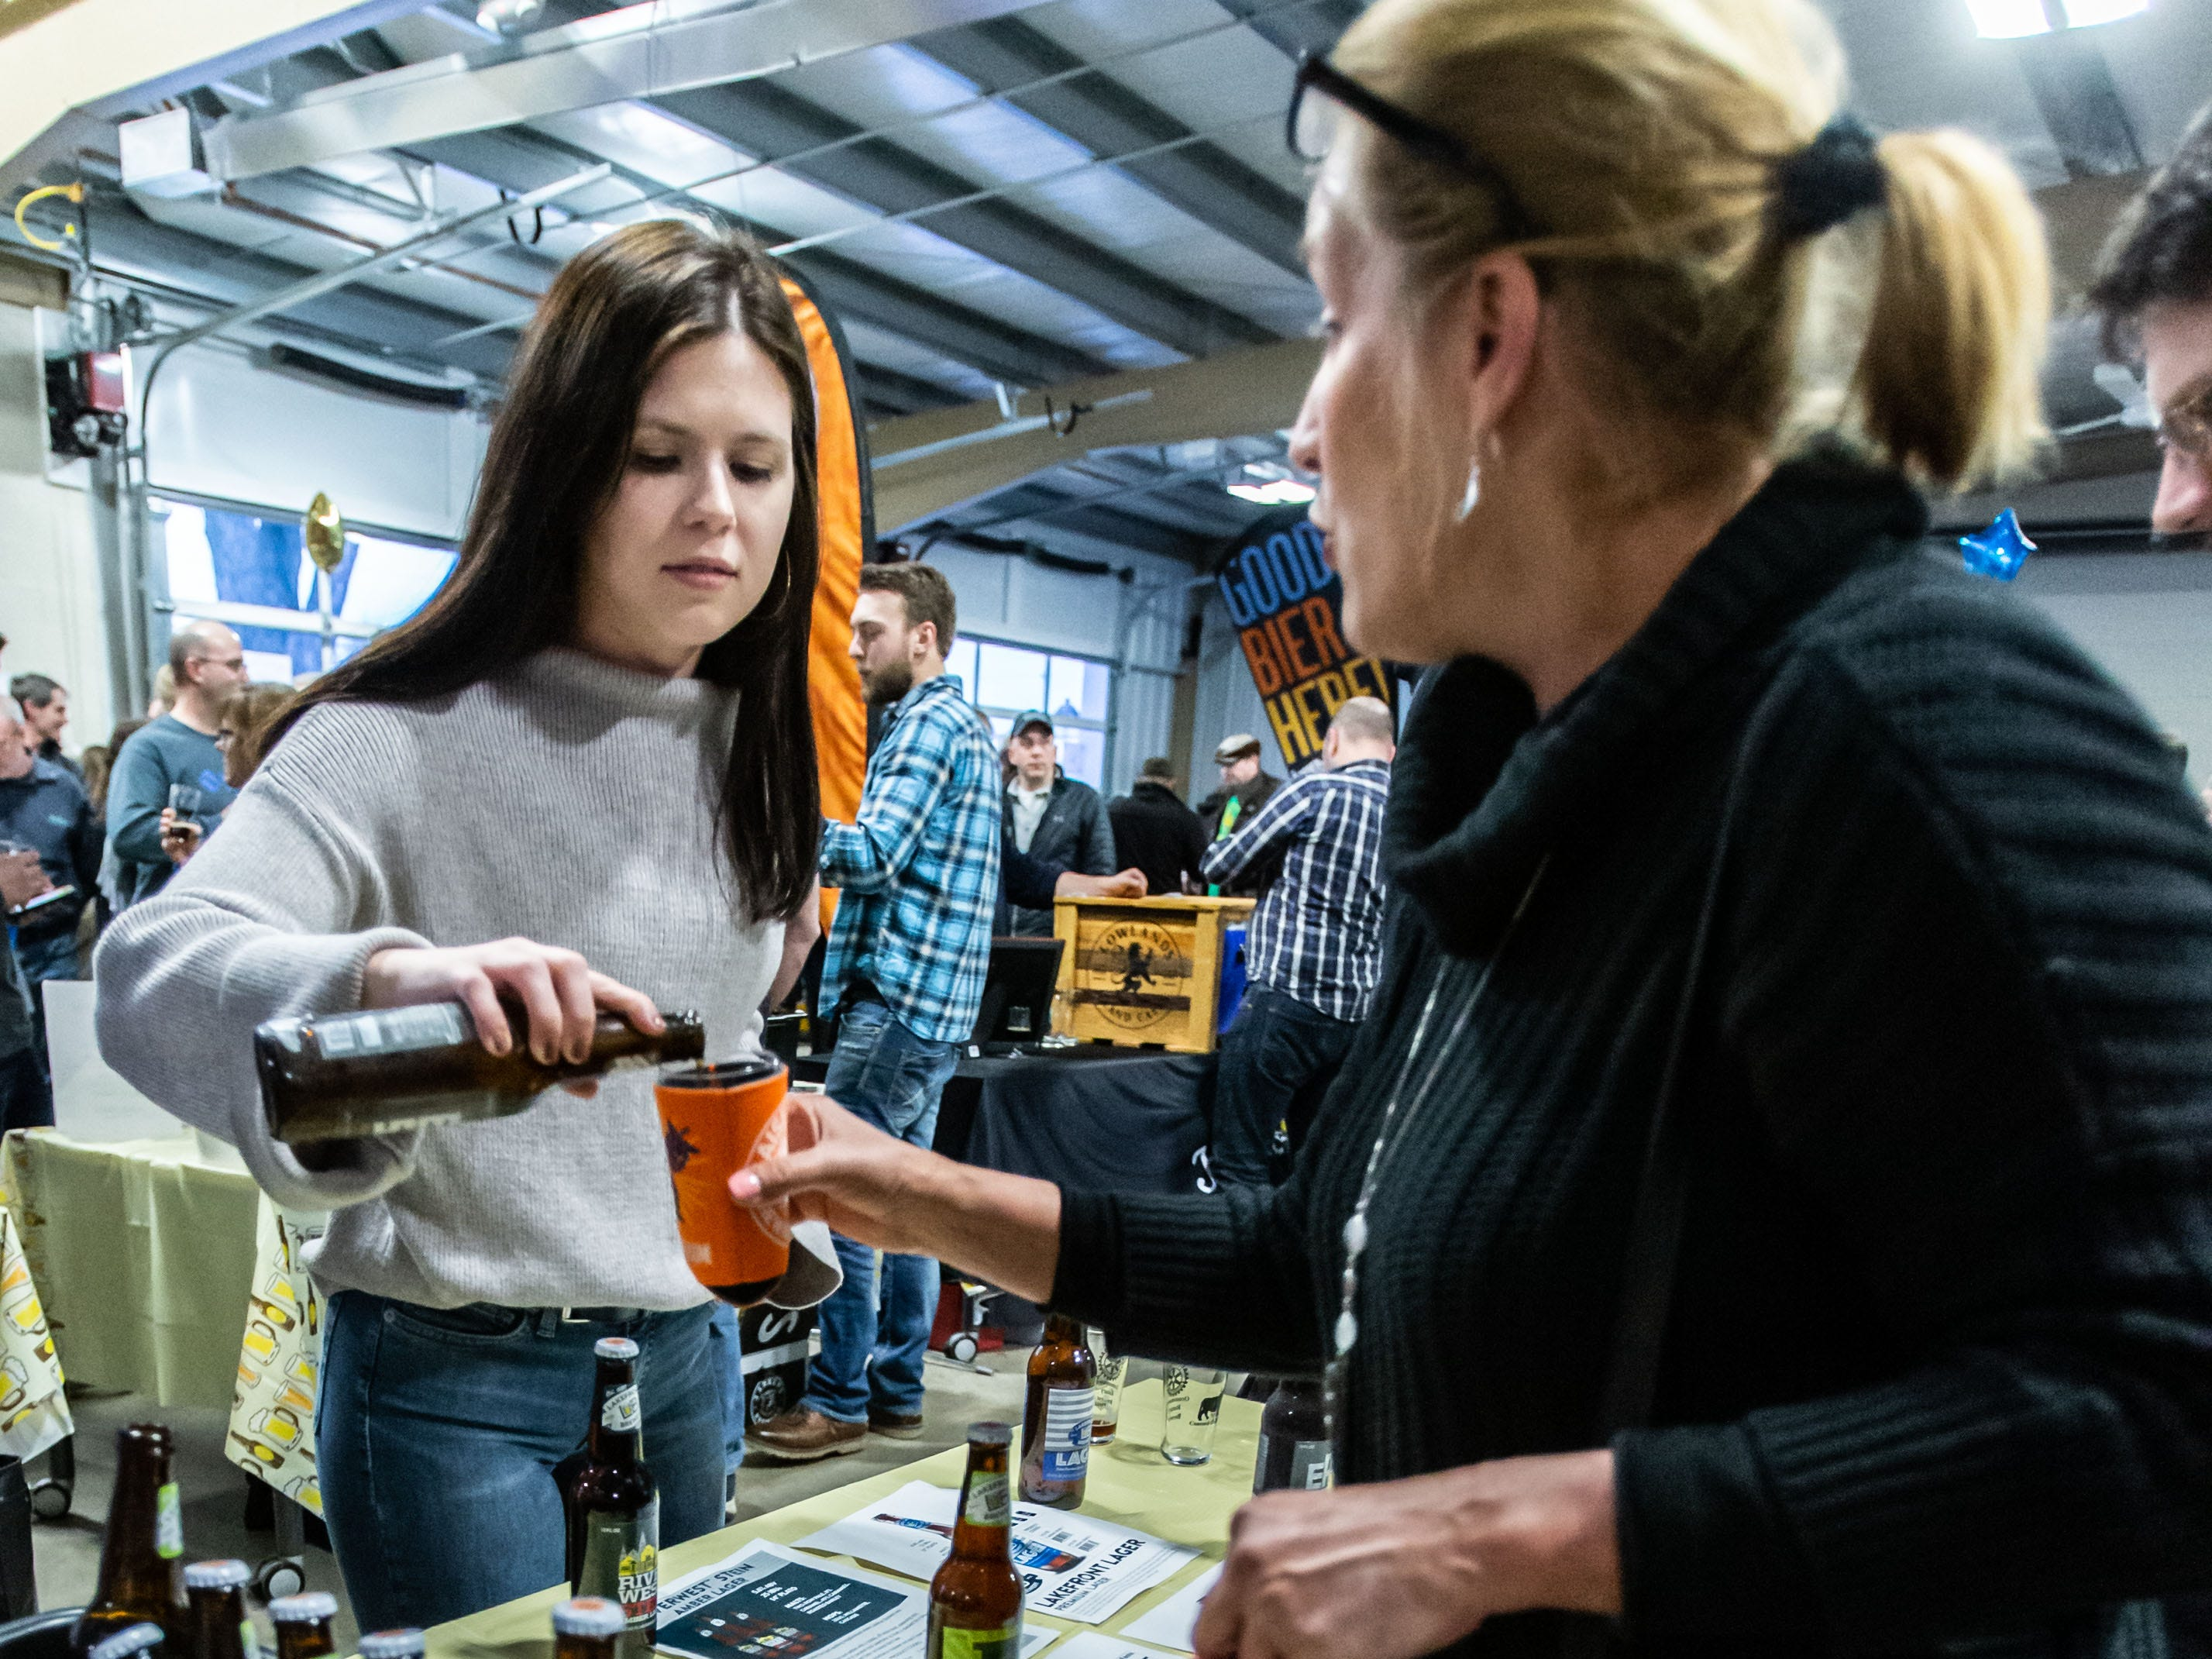 Meghan Hoerl of Lakefront Brewery pours a beer for Stacey Cibulka of Ixonia during the Oconomowoc Rotary Club's 13th annual Oconomowoc Wine & Brewfest in Okauchee on Saturday, March 2, 2019.